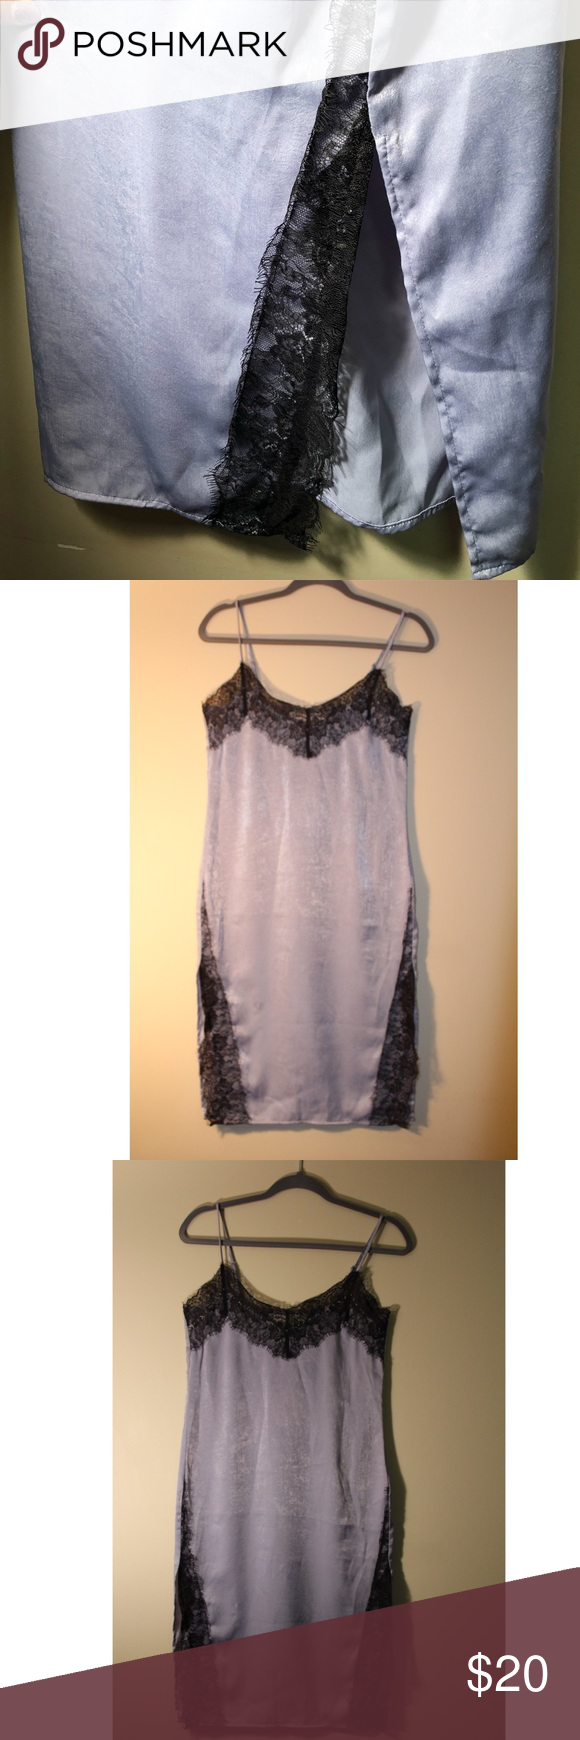 H&m blue lace dress  HuM Coachella Collection Lace and Stud Slip Dress NWT in   My